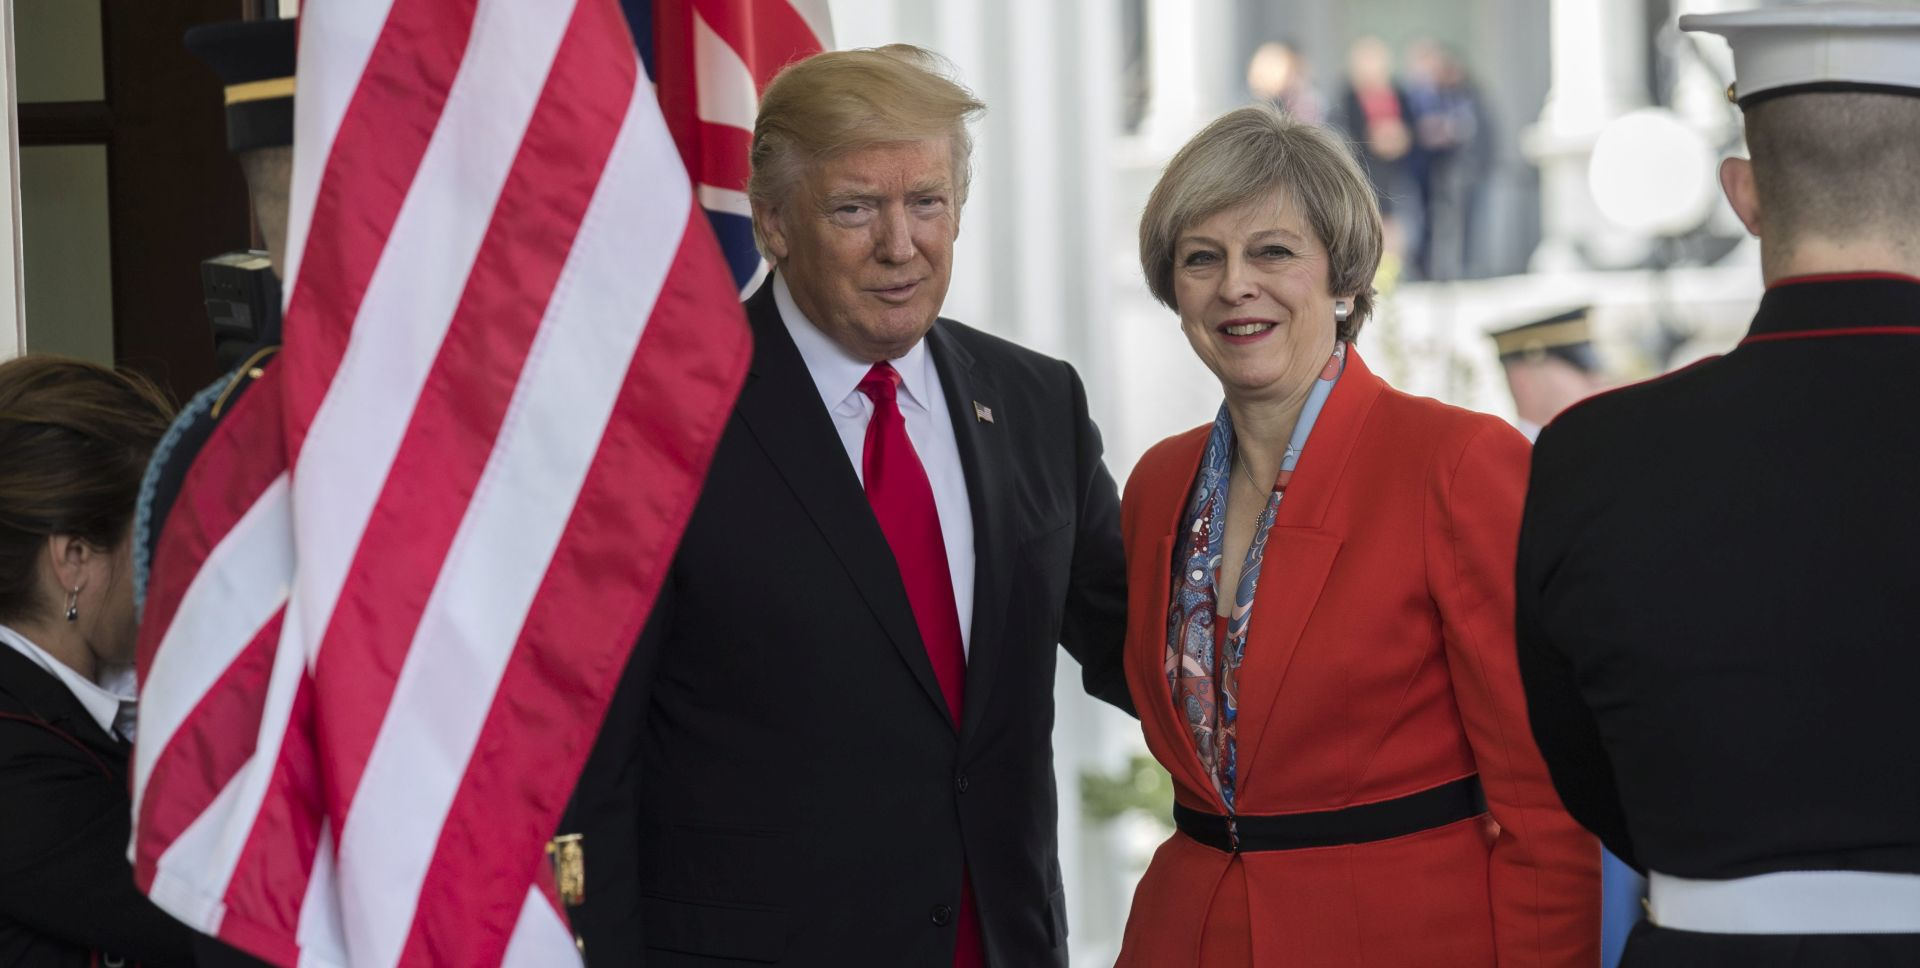 VIDEO: Theresa May 'čuva pozivnicu' za Donalda Trumpa